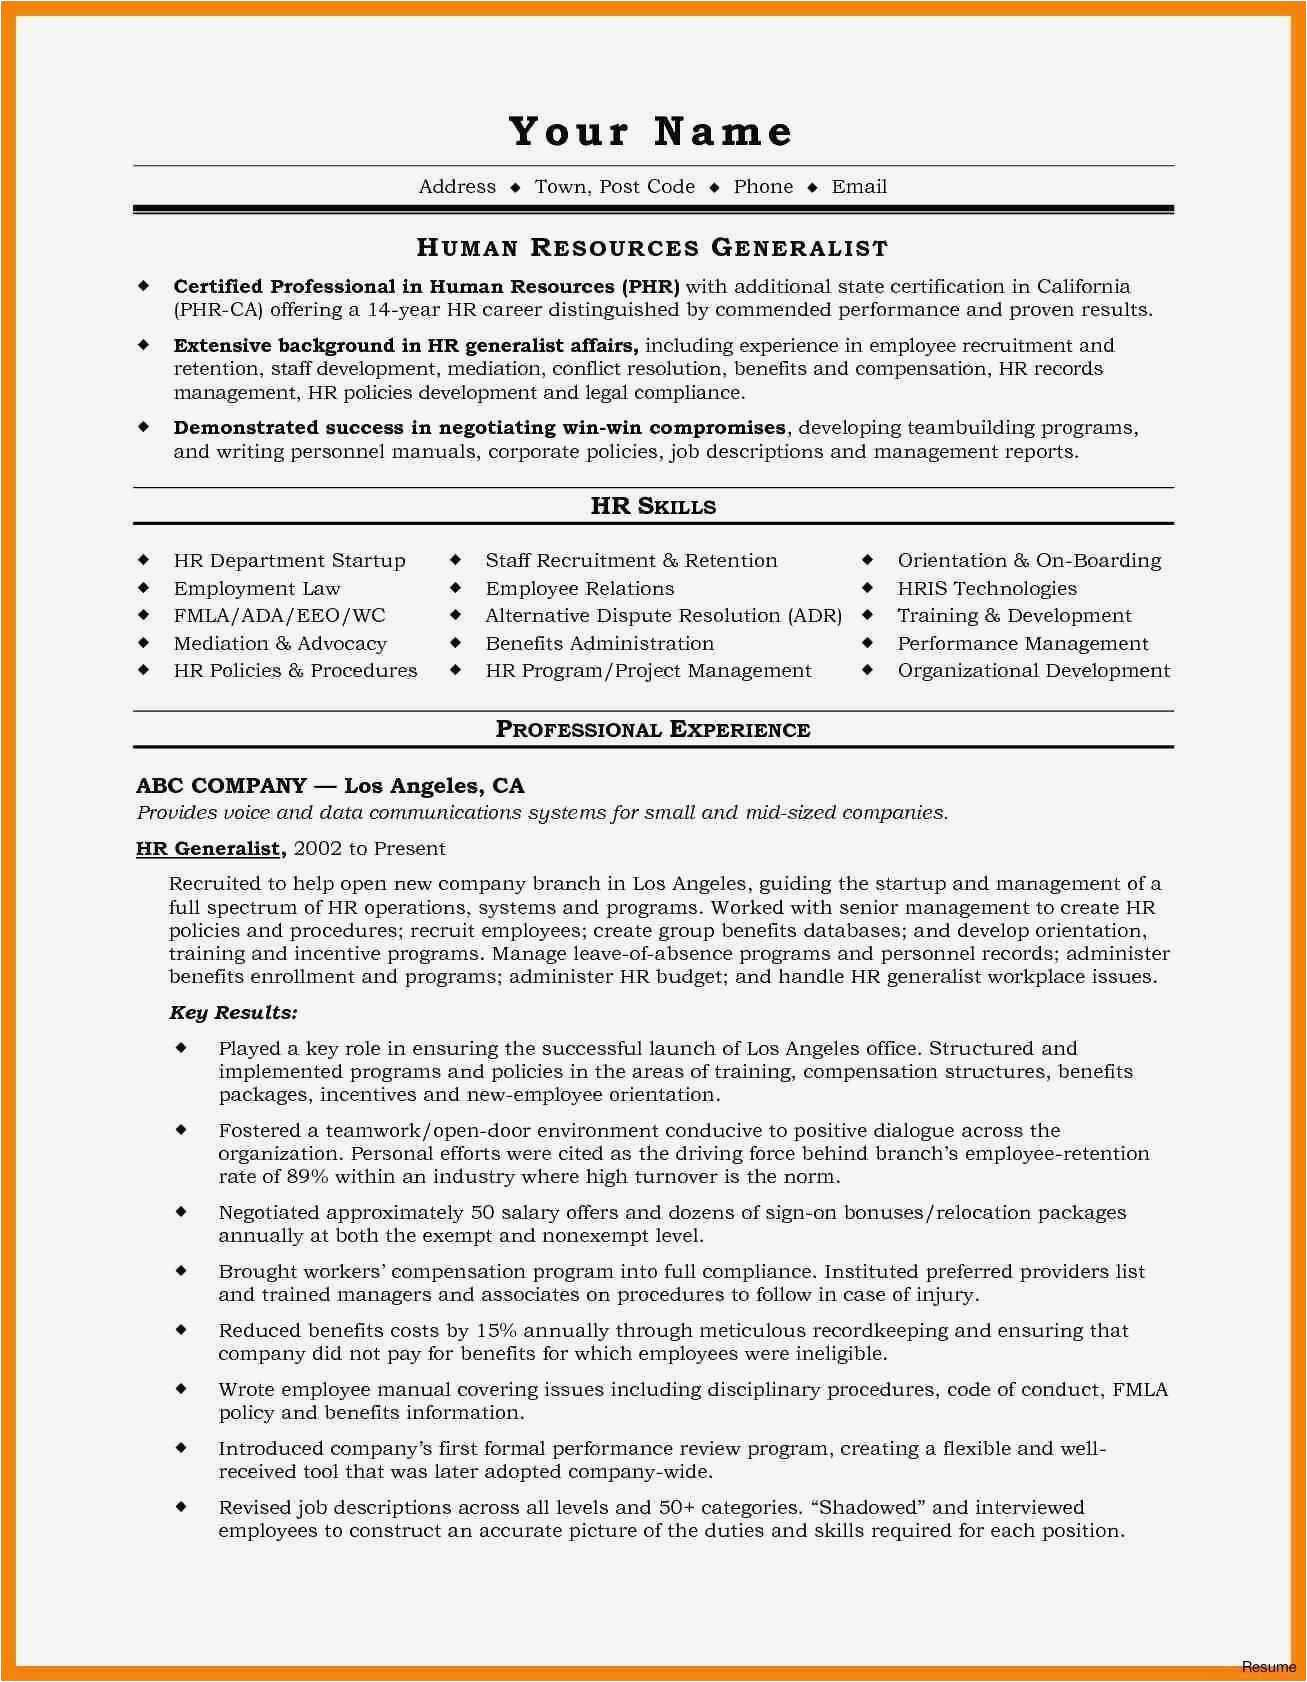 Fmla Request Form Gallery 20 Free Fmla Printable Forms Picture - Free Printable Hr Forms